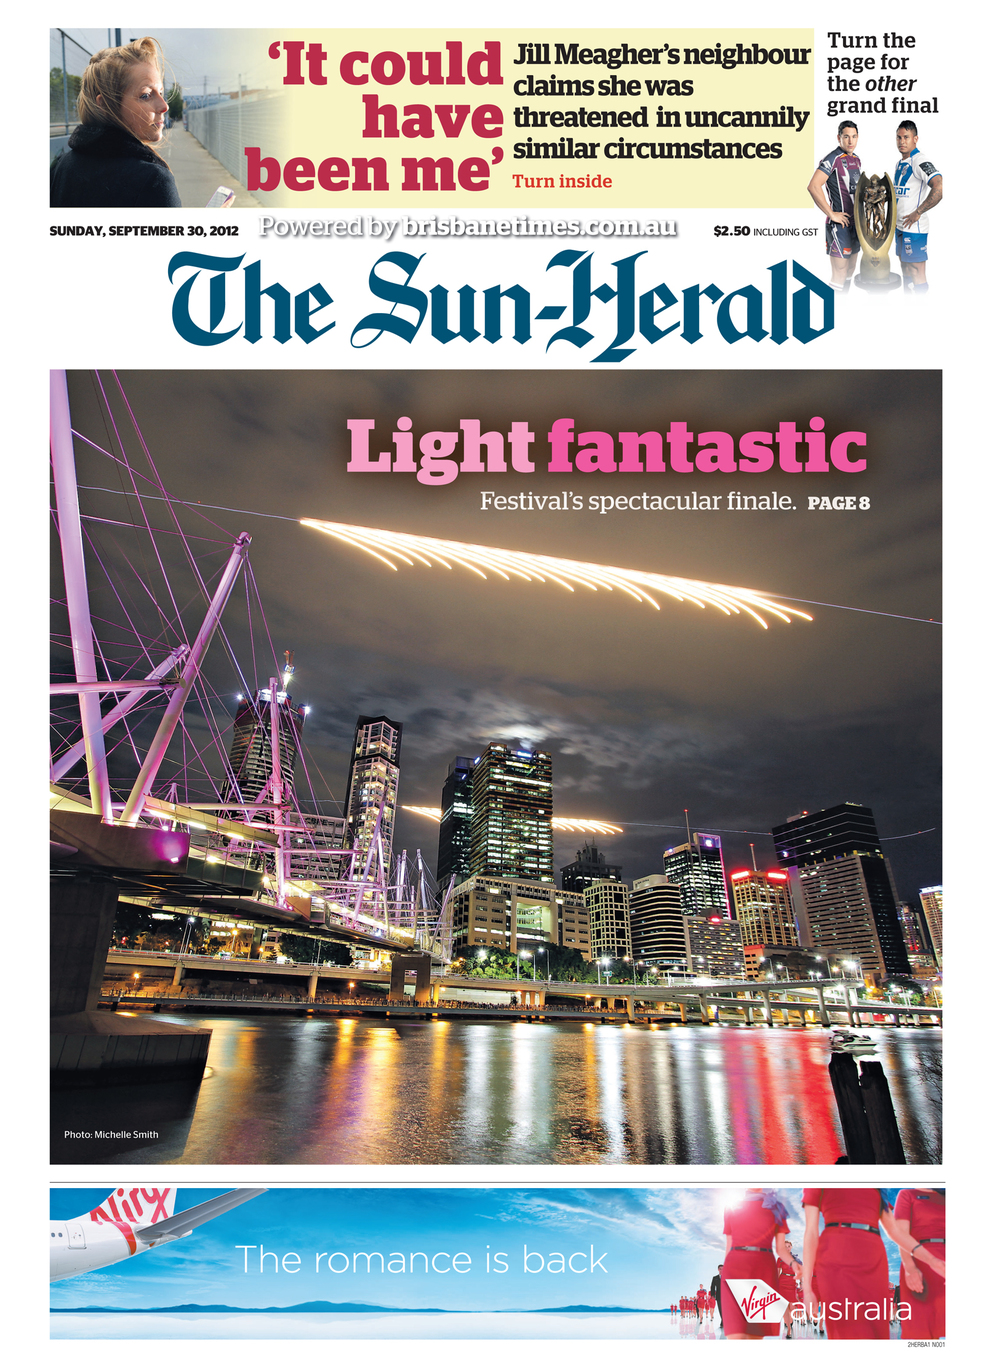 Two Super Hornets light up the Brisbane sky during Riverfire.